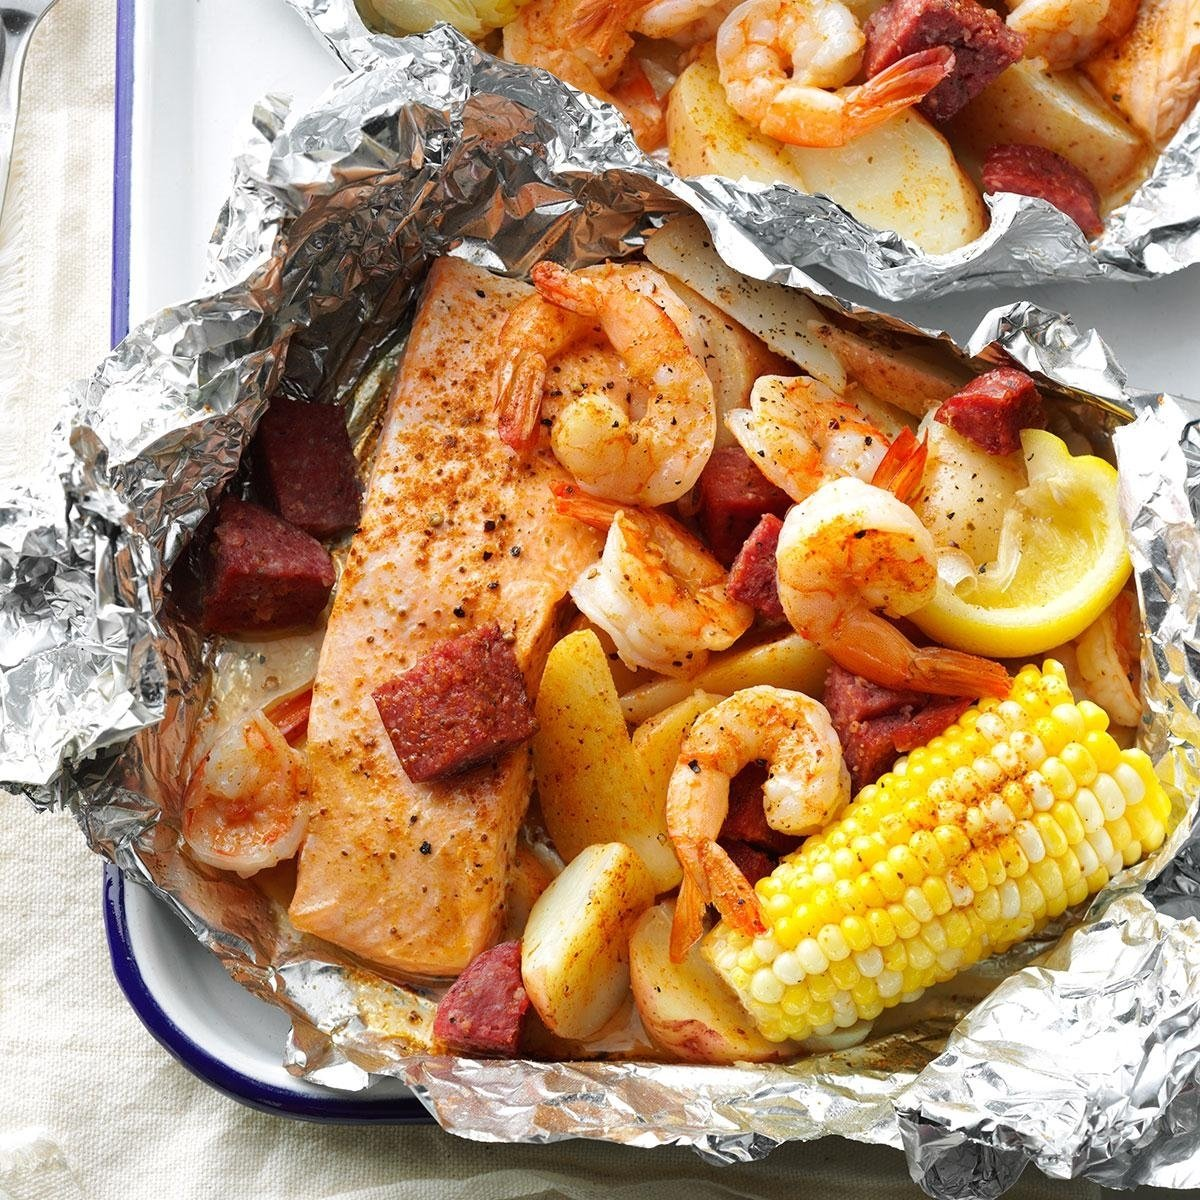 10 Best Dinner Ideas On The Grill cajun boil on the grill recipe taste of home 1 2020